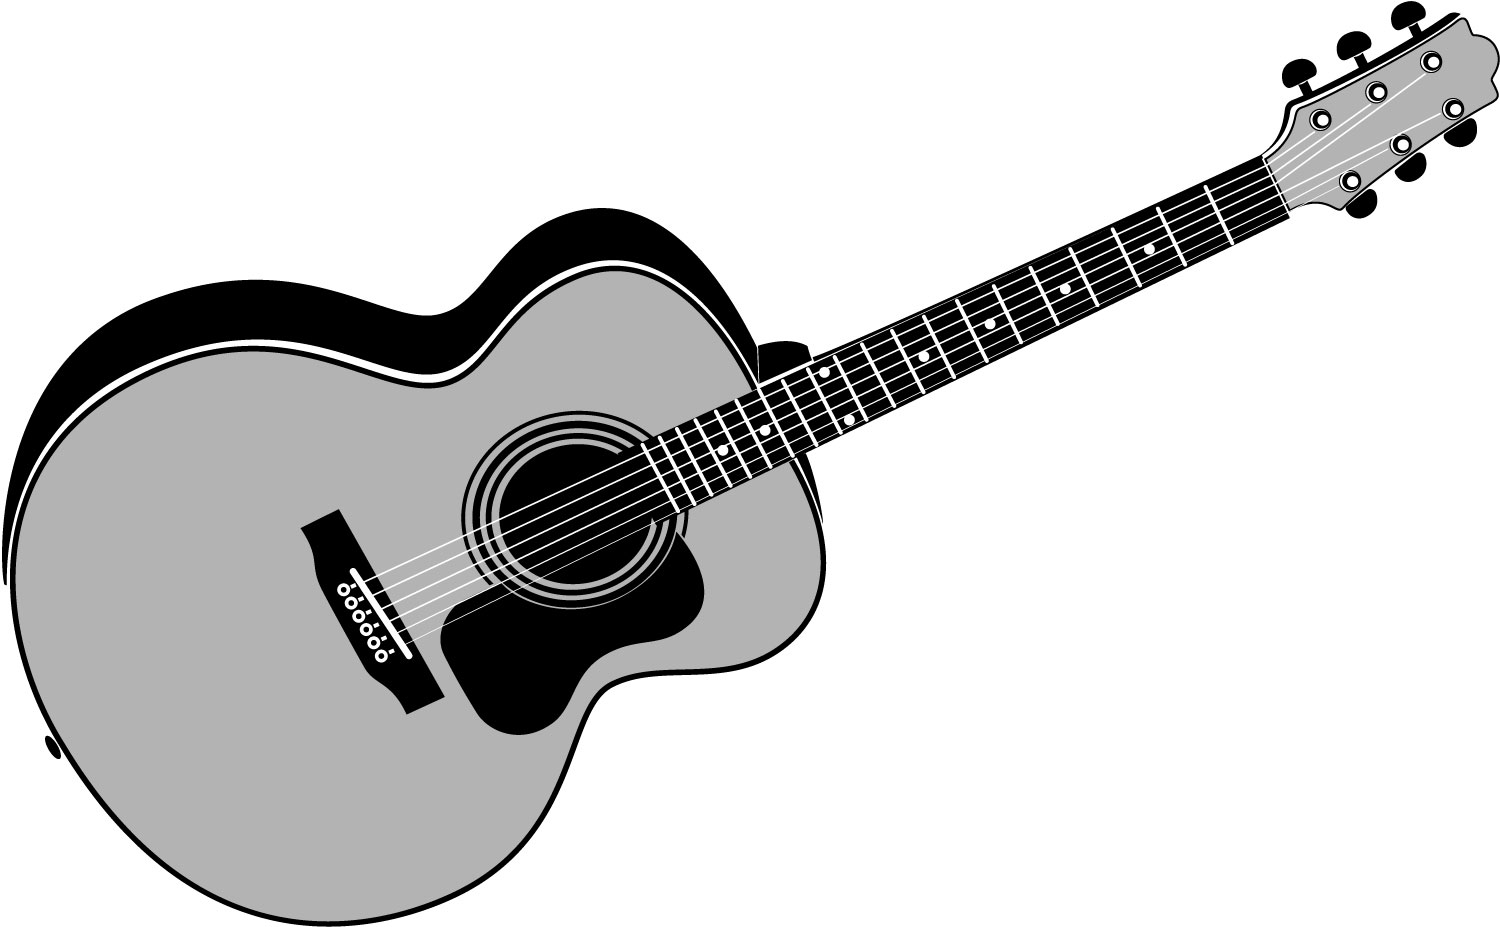 Free Acoustic Guitar Clipart, Download Free Clip Art, Free Clip Art ... svg black and white library